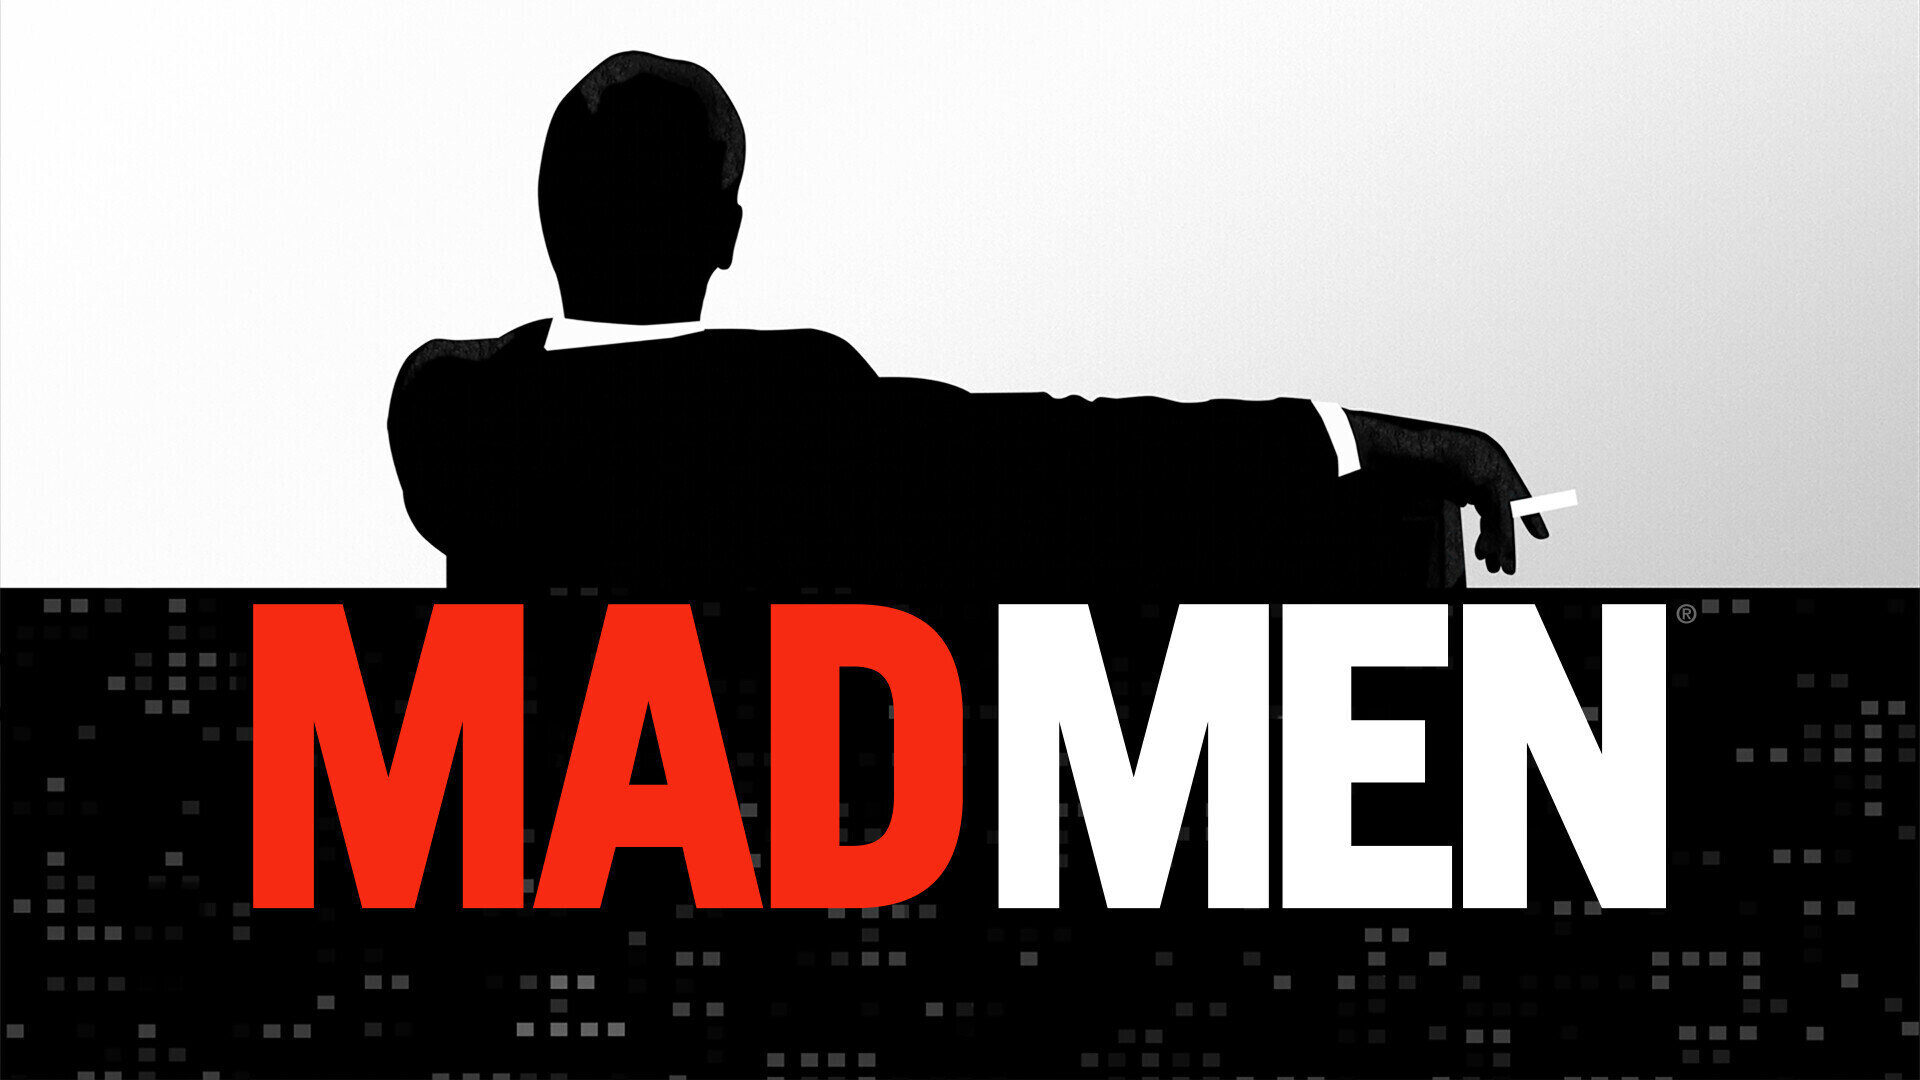 Mad Men - For Those Who Think Young